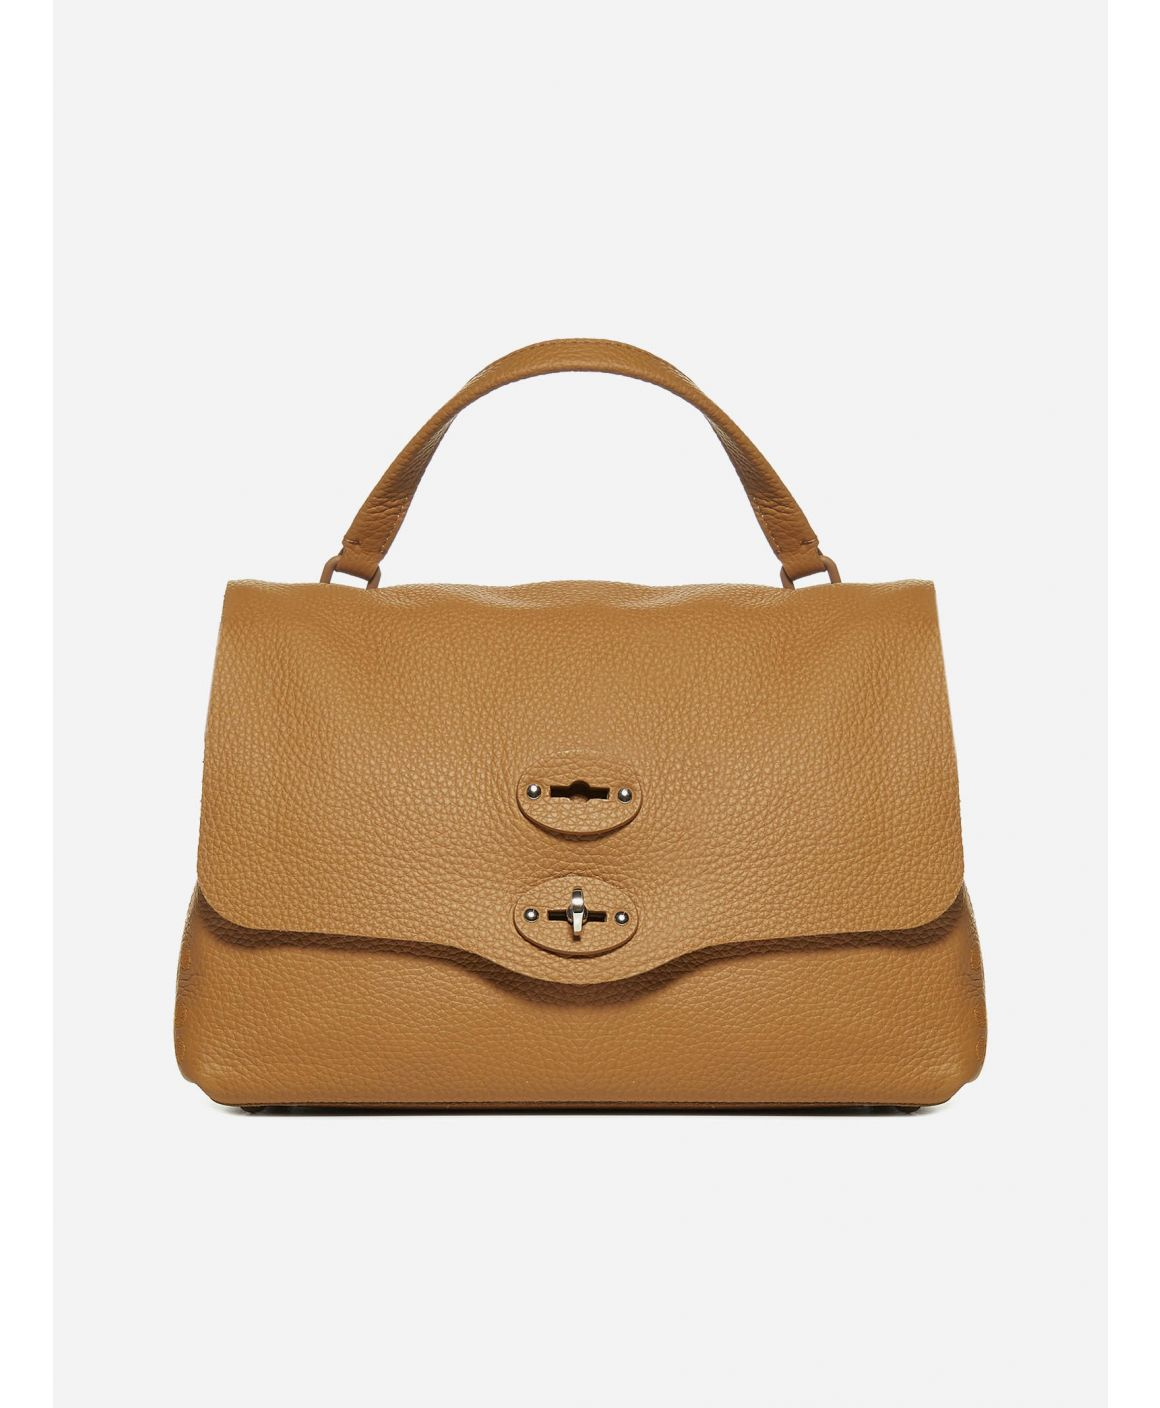 Postina S leather bag